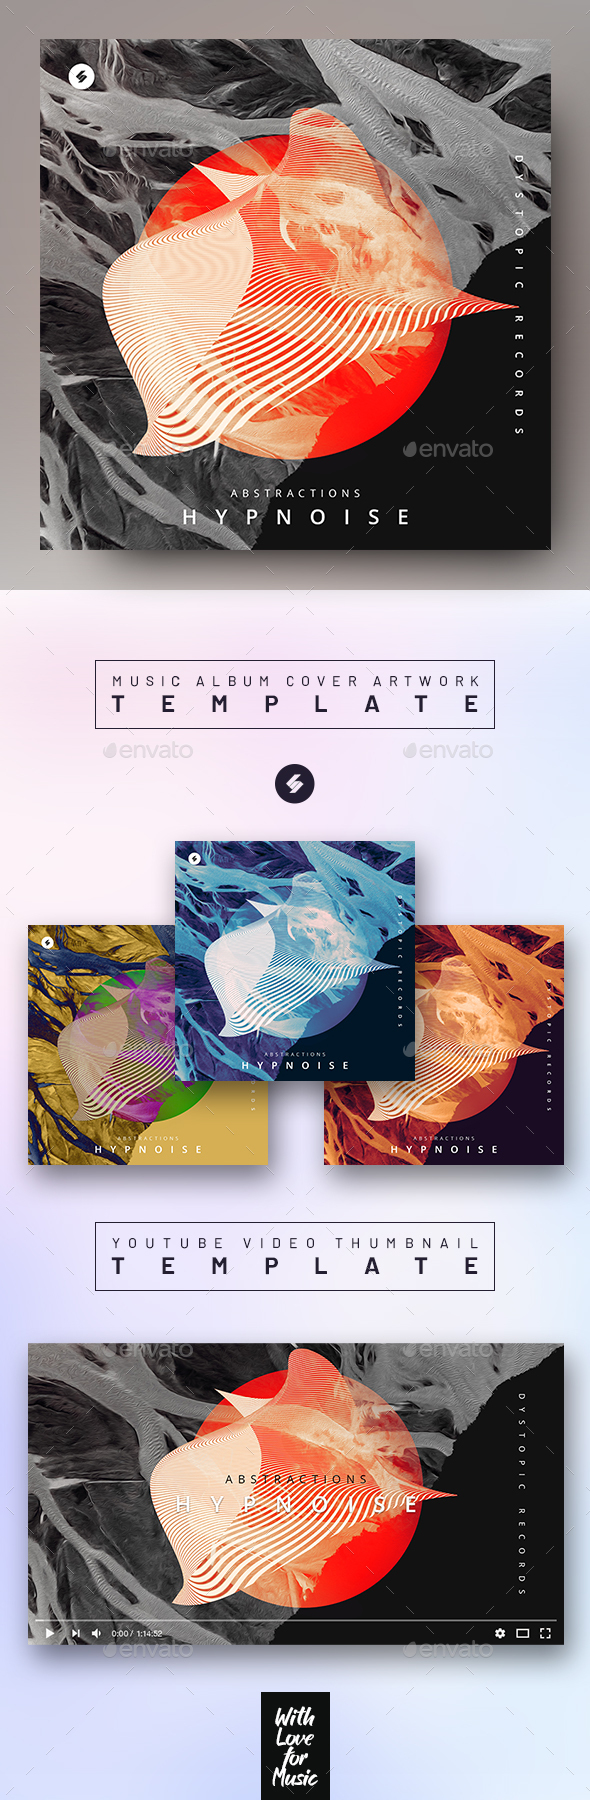 Abstractions – Music Album Cover Artwork / Video Thumbnail Template